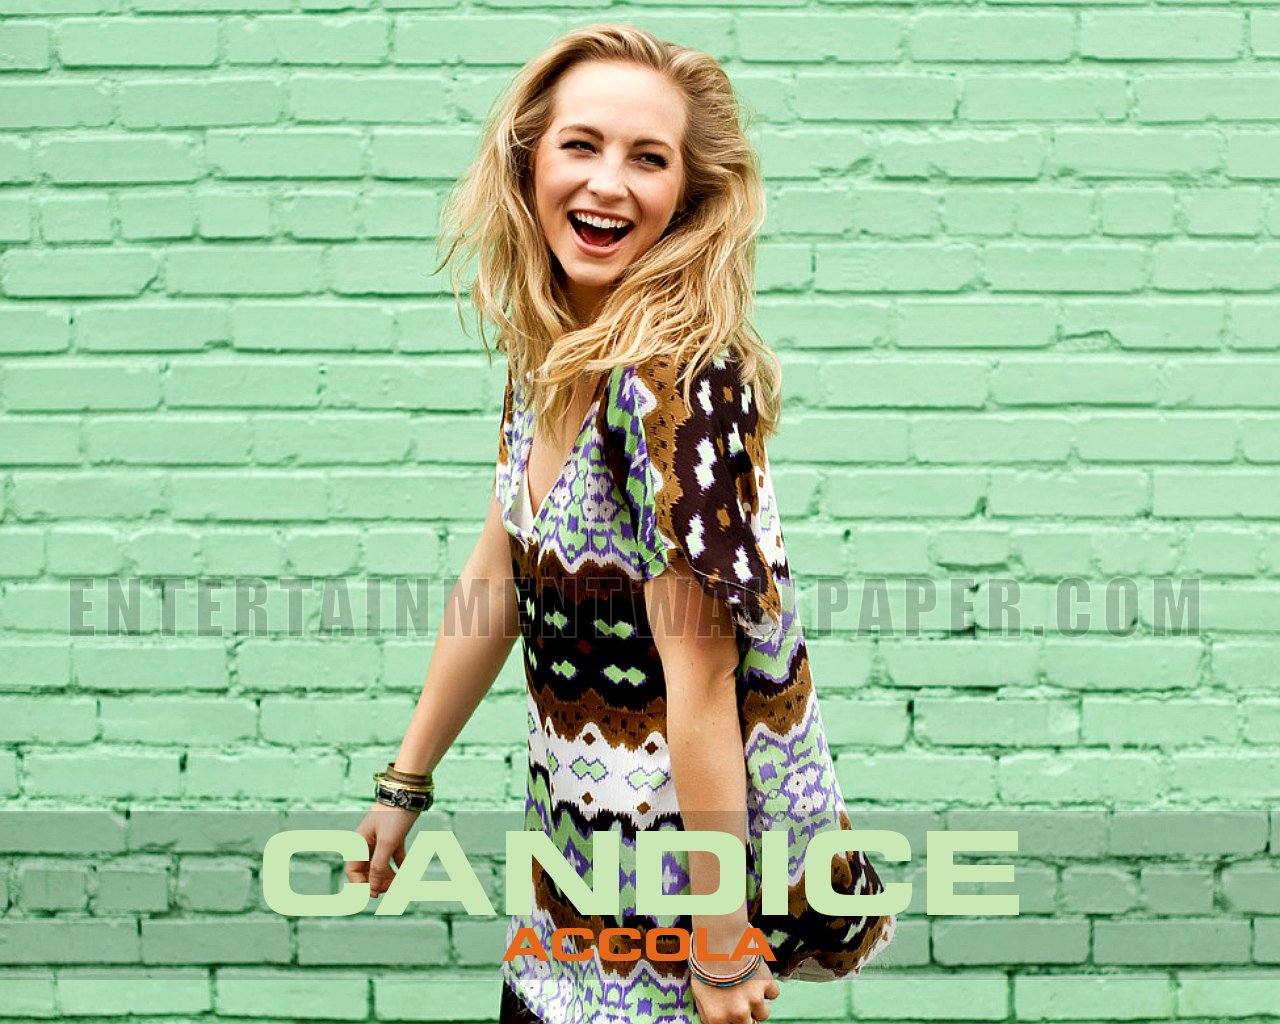 1280x1024 - Candice Accola Wallpapers 28